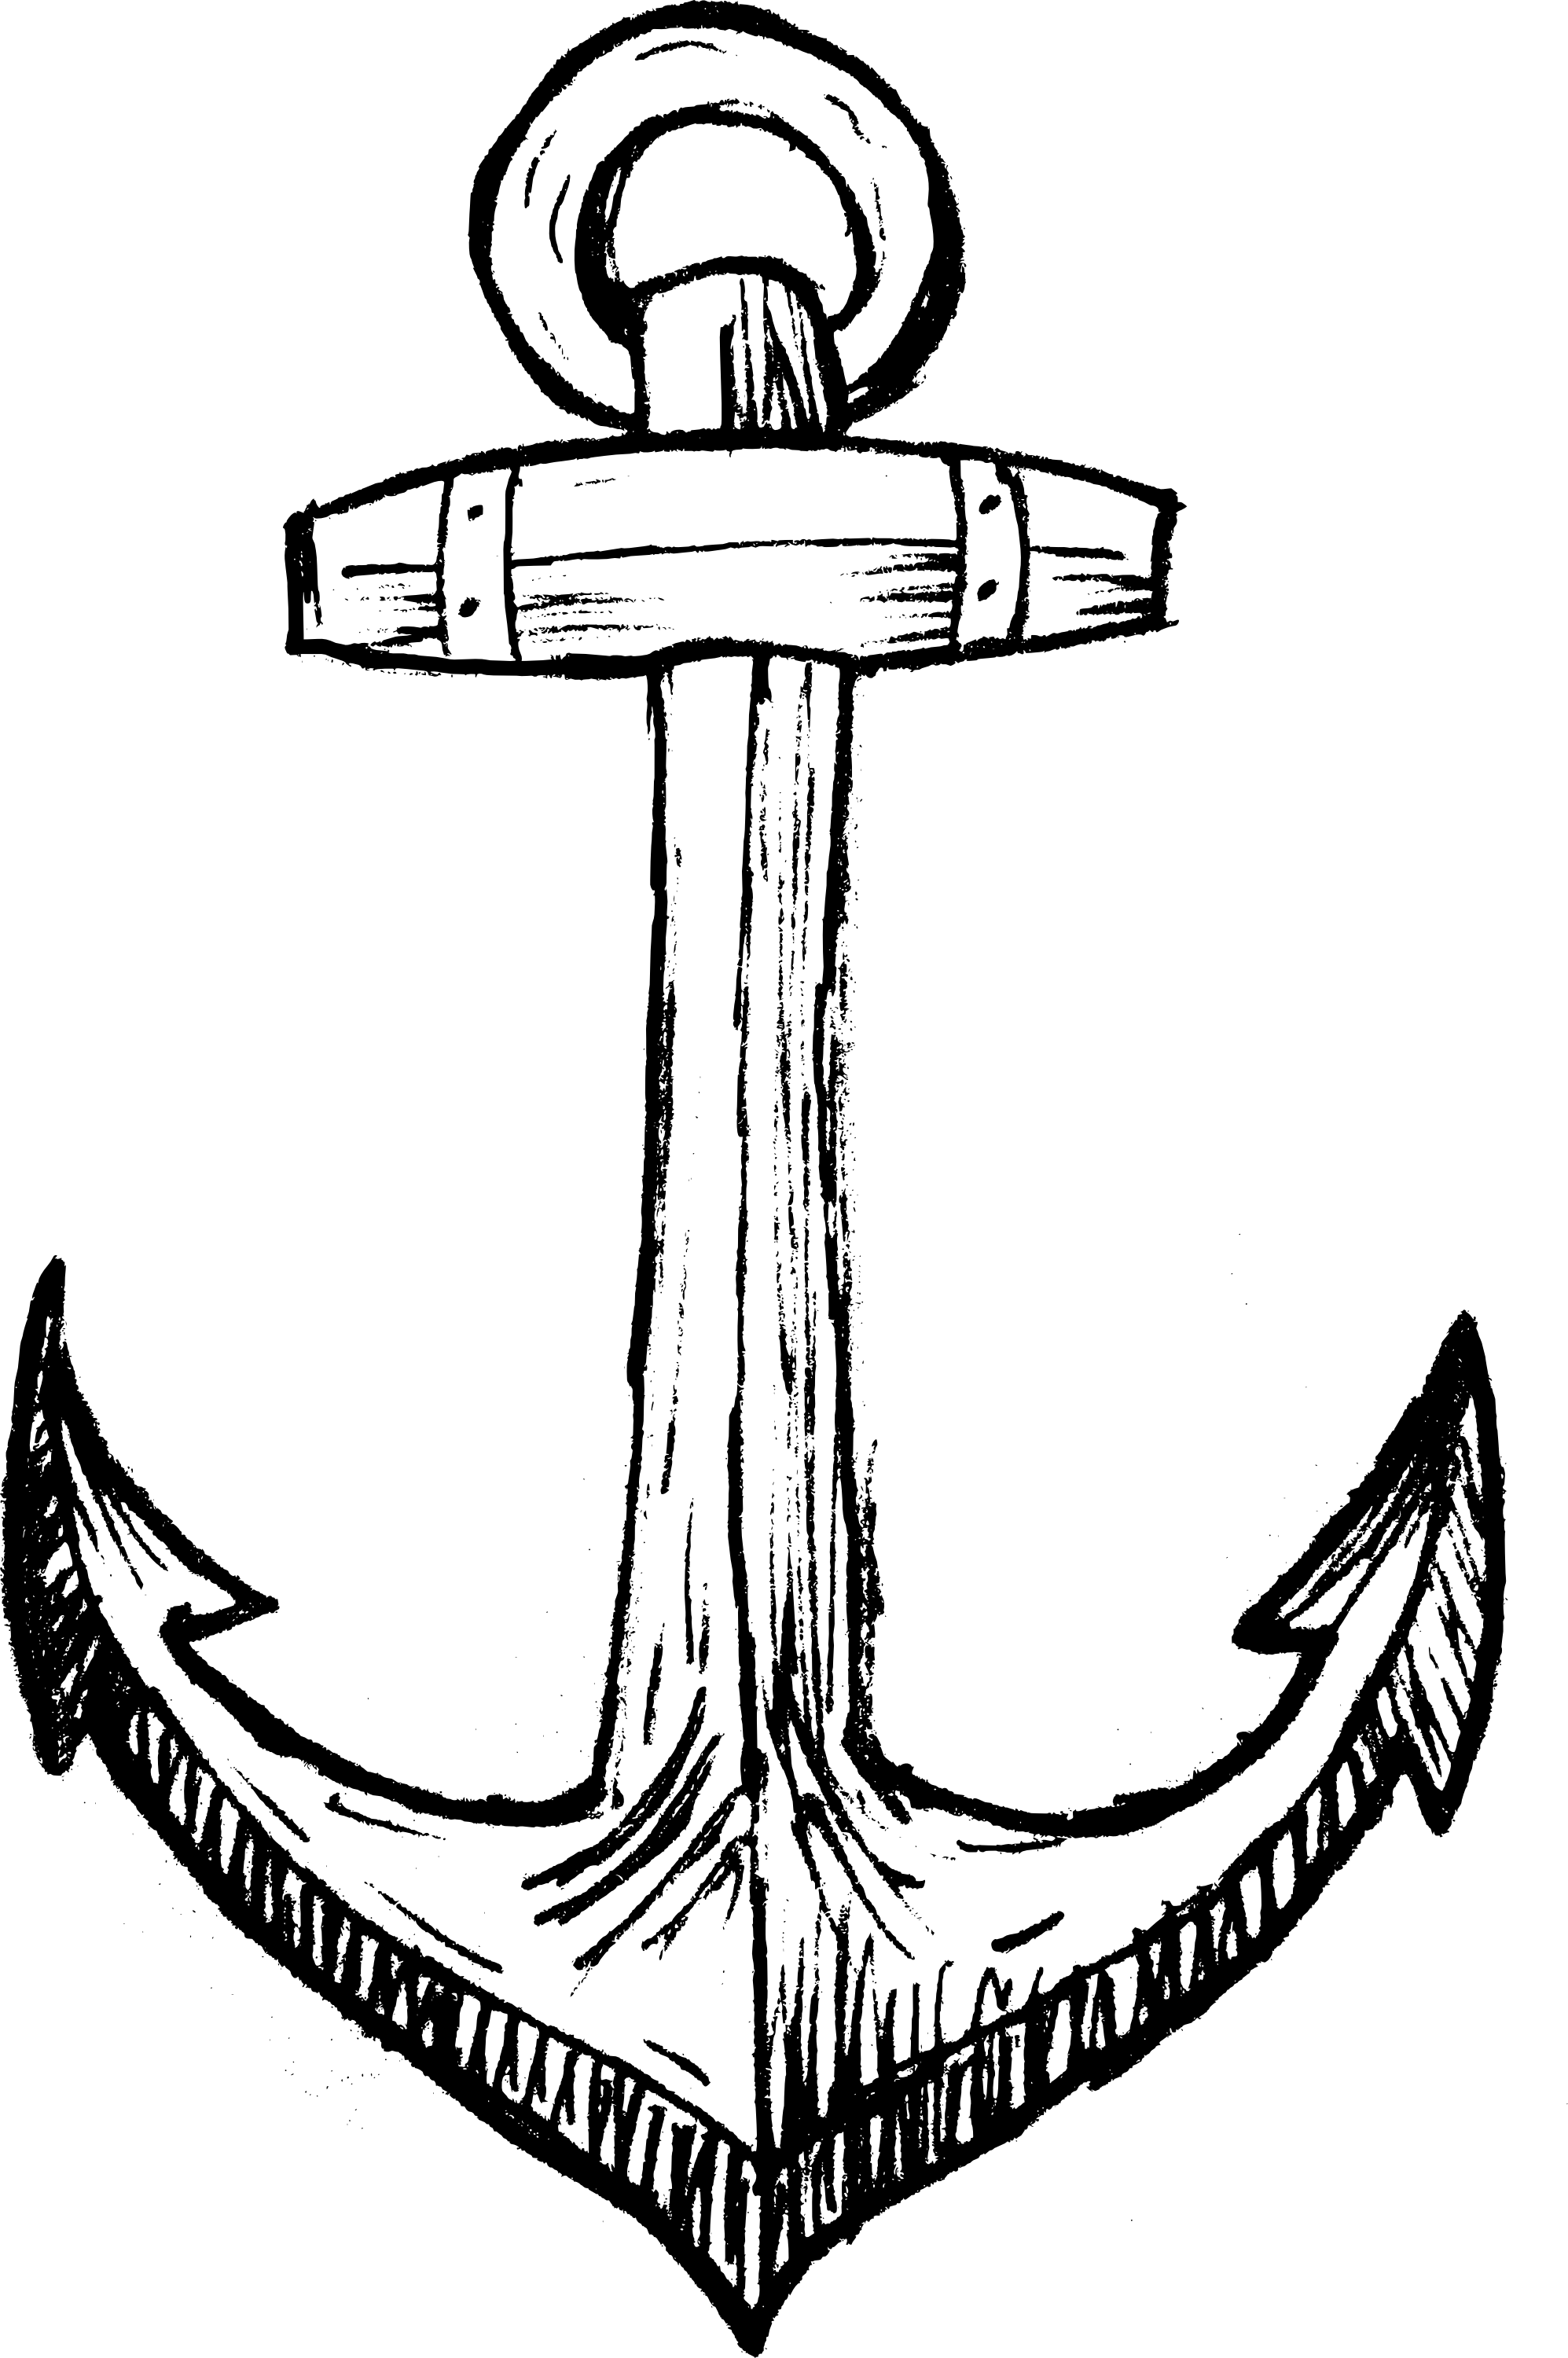 Anchor png transparent. Drawings onlygfx com